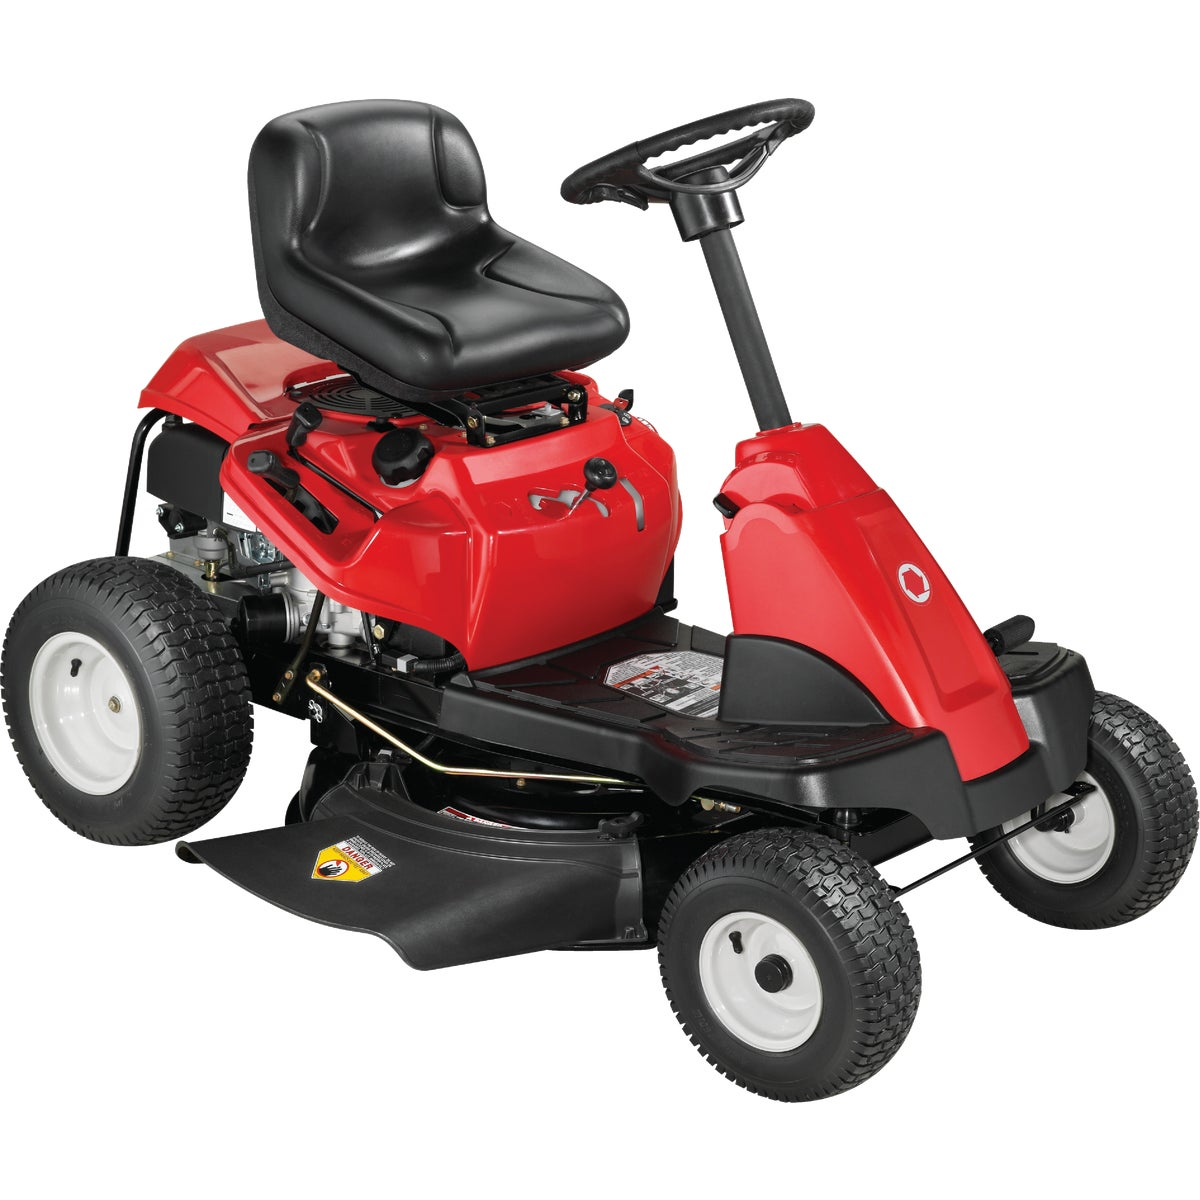 "30"" LAWN TRACTOR - 13B226JD066 by M T D Products"